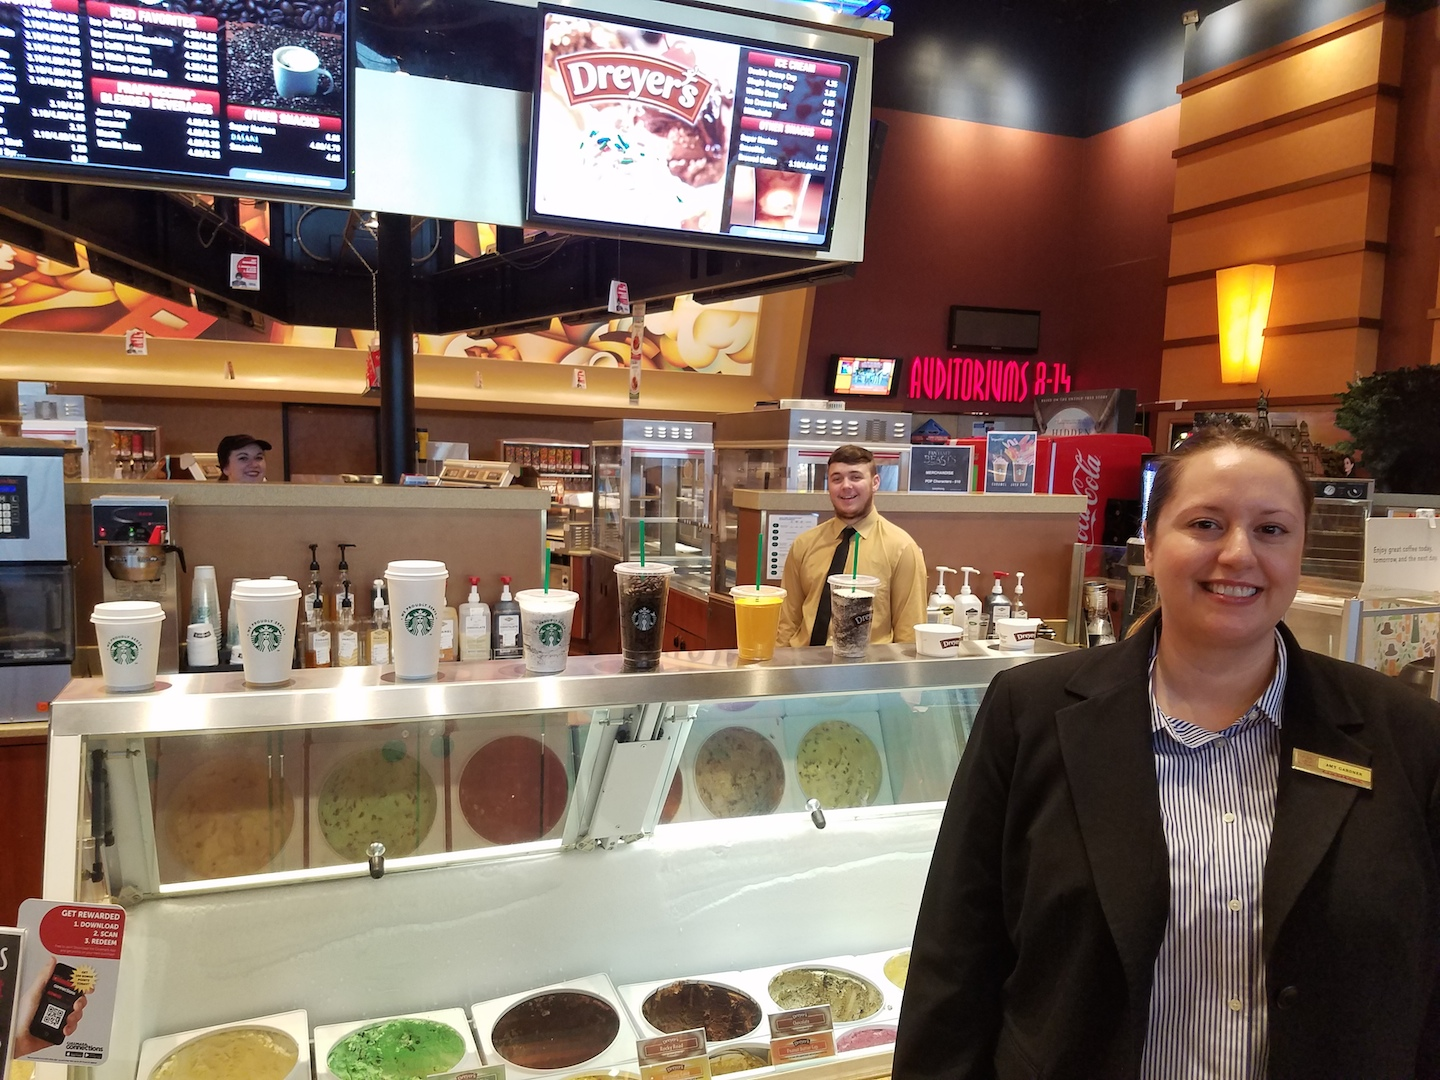 Movie Viewing Experience Takes A Notch Up At Cinemark Century